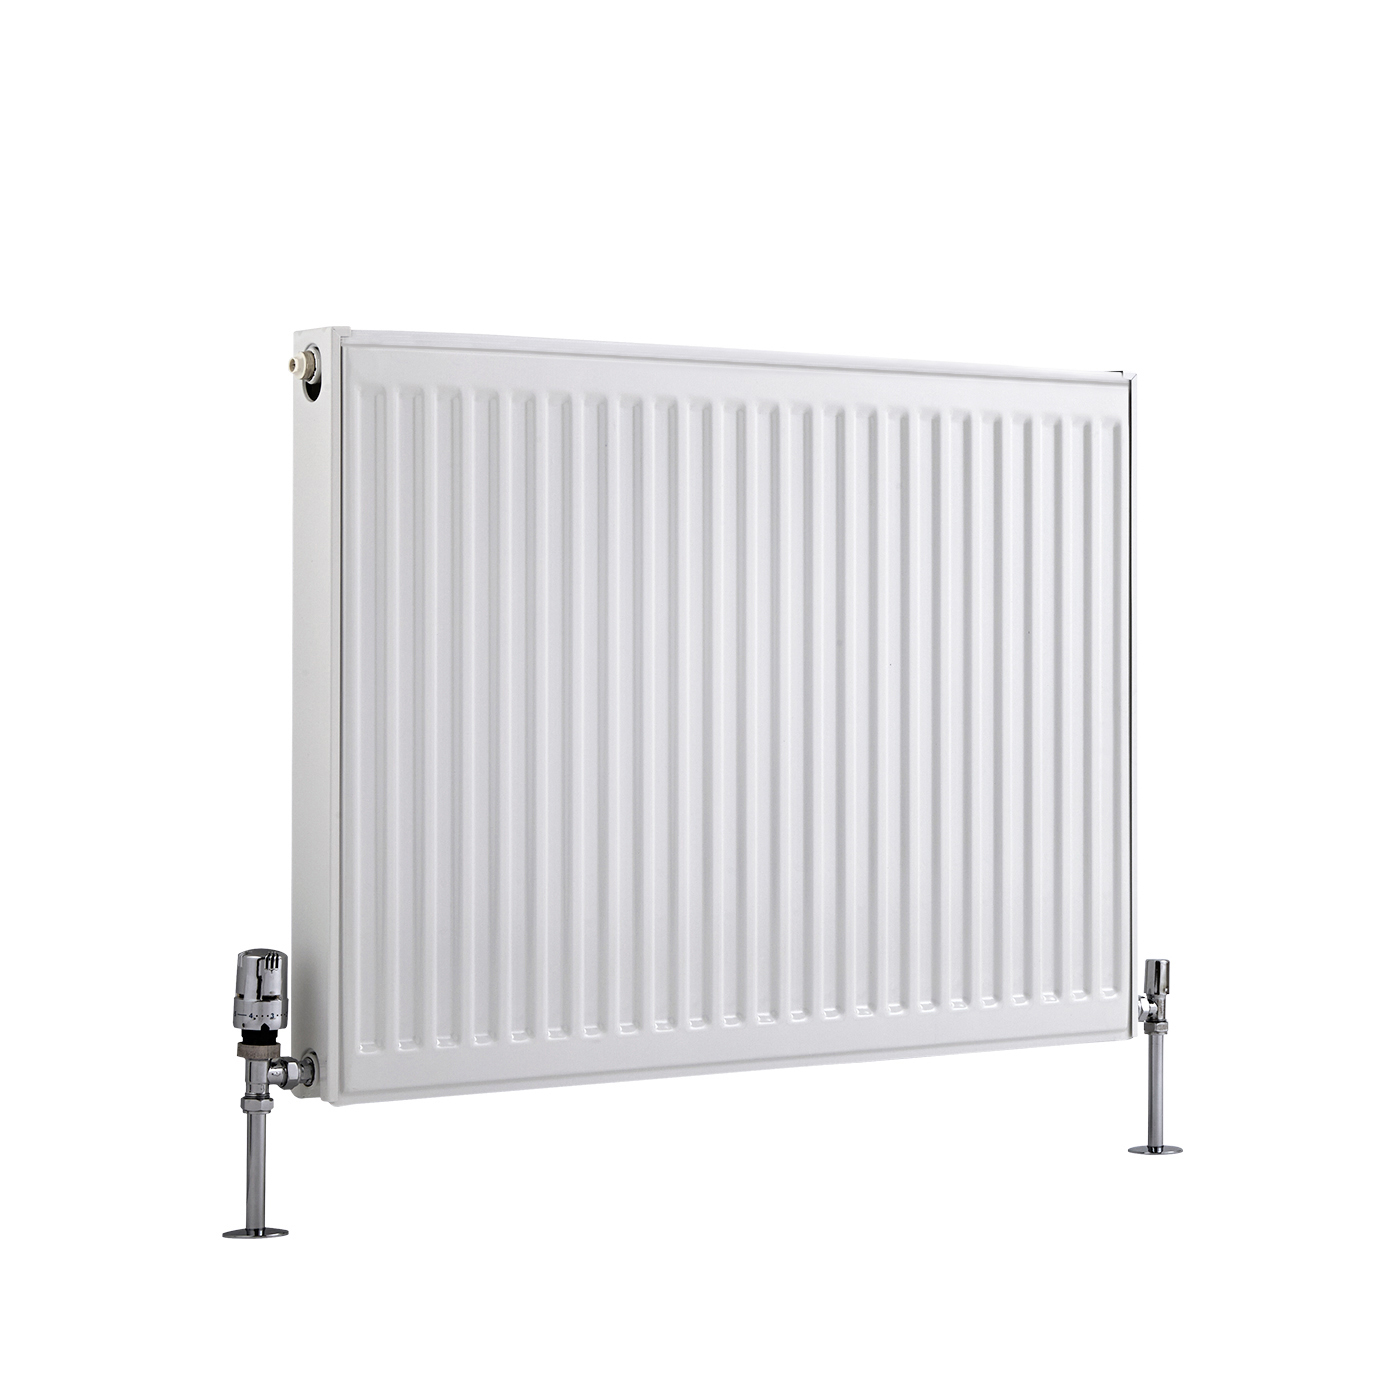 Radiador Convector Horizontal con Panel Doble Plus - Blanco - 600mm x 800mm x 73mm - 1359 Vatios - Eco